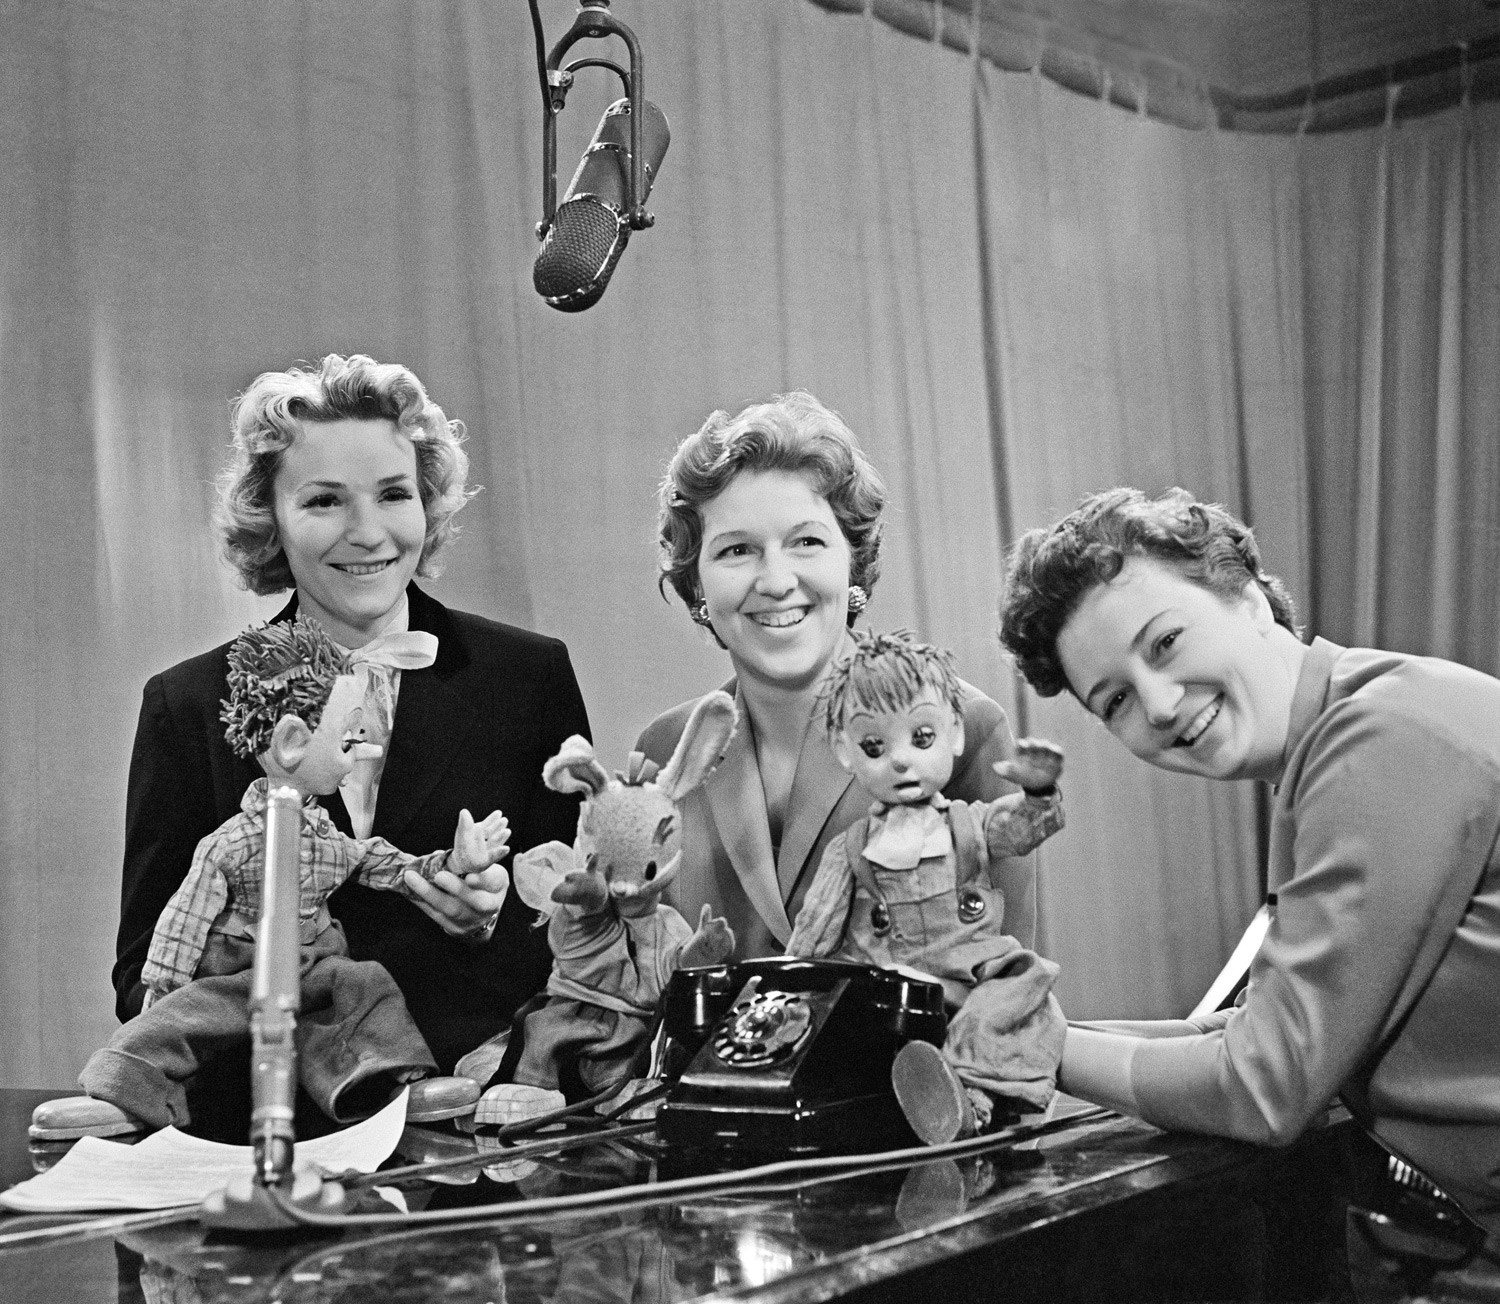 Anchorwomen of the Soviet Central TV Anna Shilova, Valentina Leontieva and Nina Kondratova (L-R) are pictured during the shooting of Good Night Little Ones.